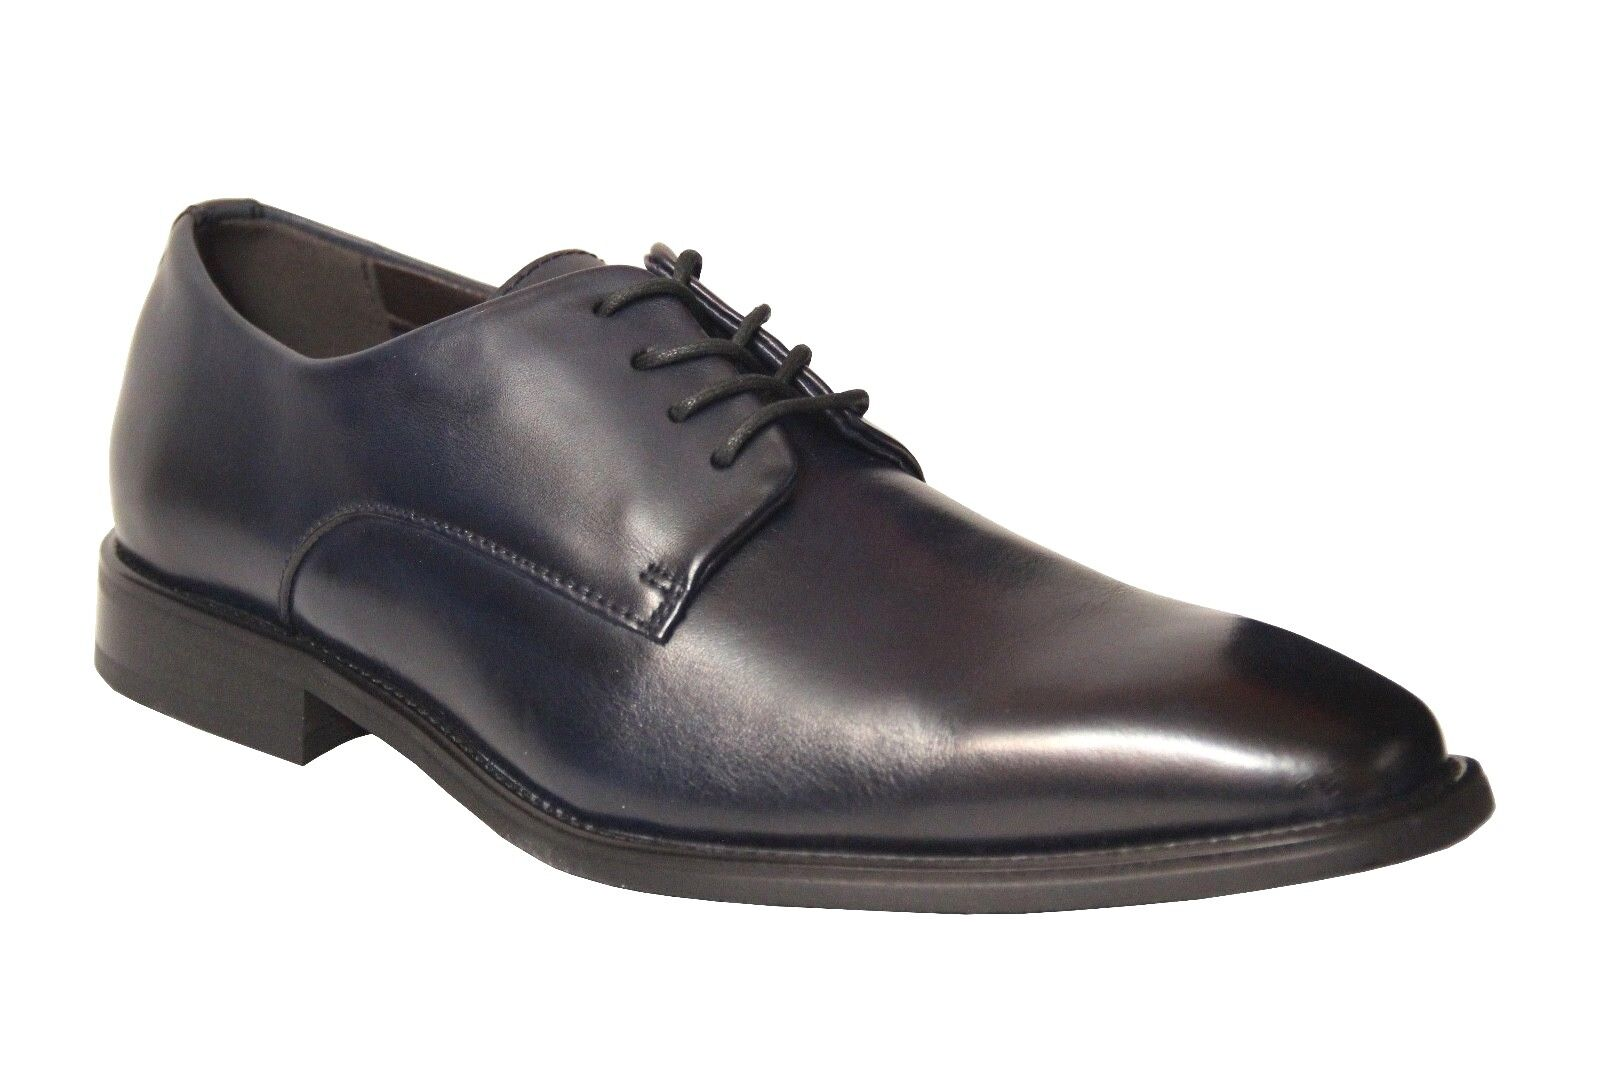 La Milano Men's Oxford Navy Blue Leather Dress Shoes A11326